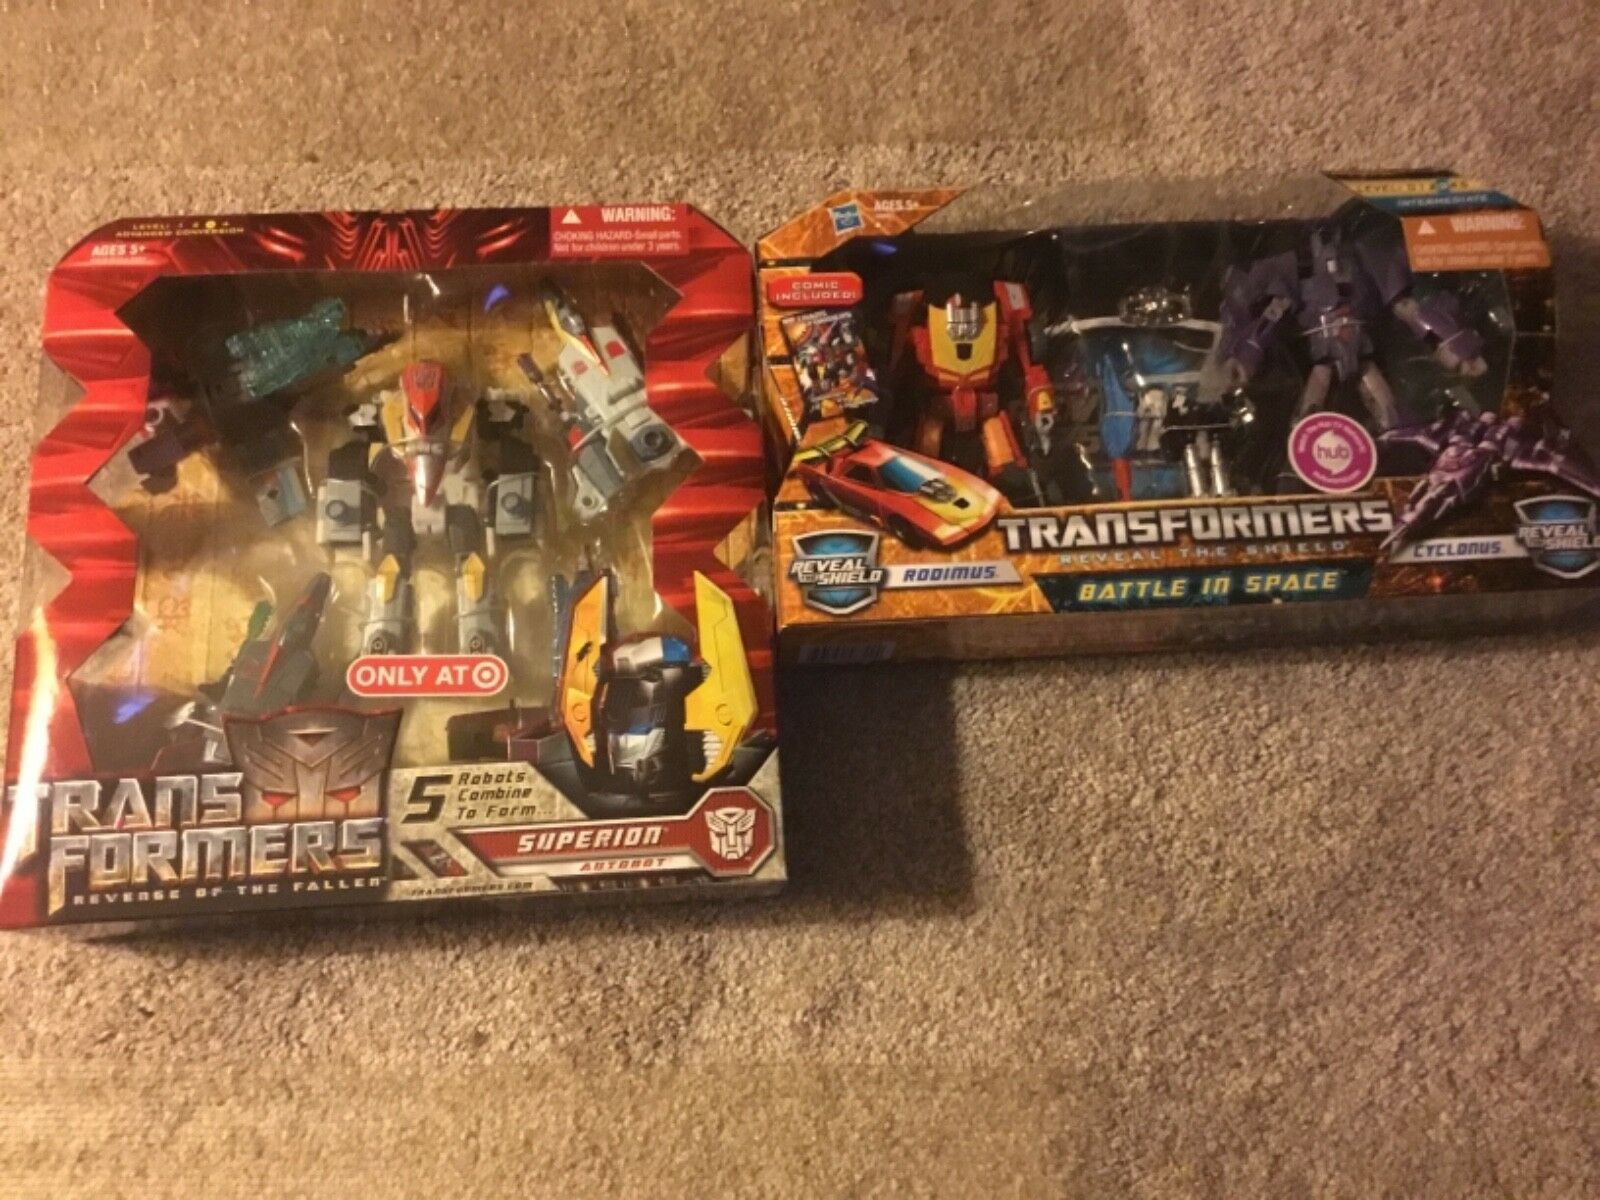 ✰ Transformers Reveal the Shield Rodimus Cyclonus and Target exclusive superion